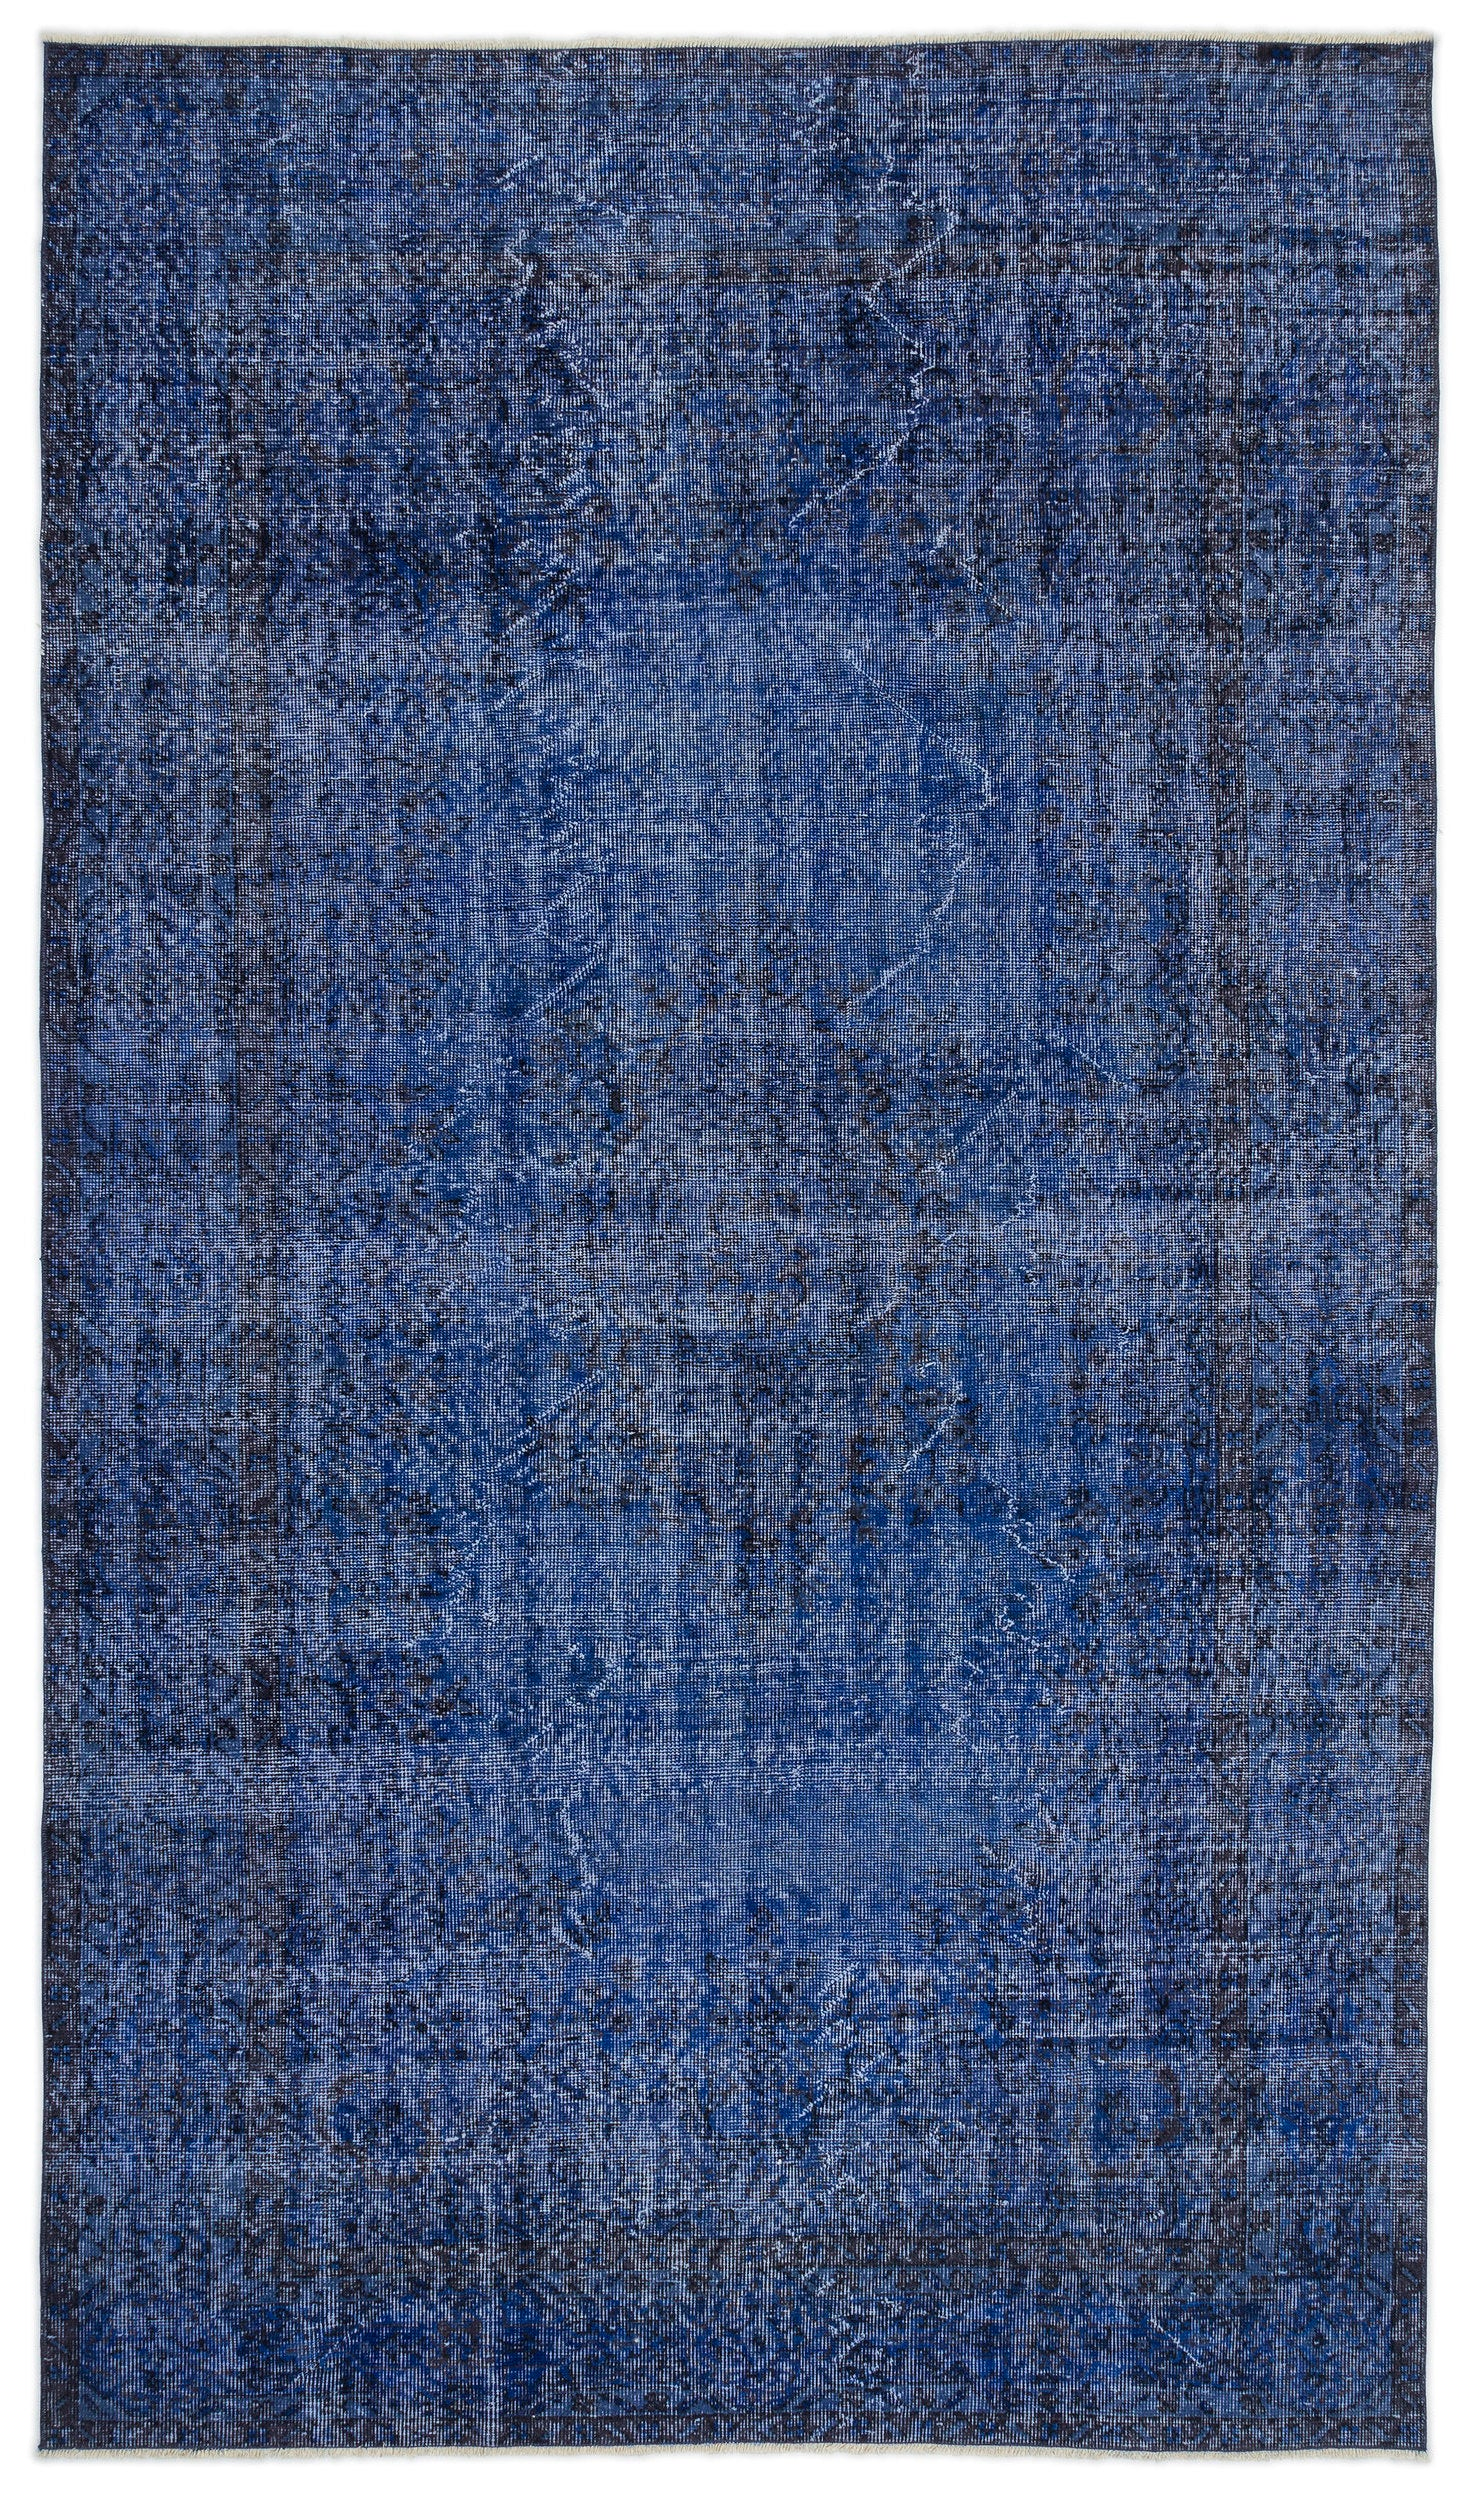 Blue Over Dyed Vintage Rug 5'6'' x 9'5'' ft 167 x 286 cm